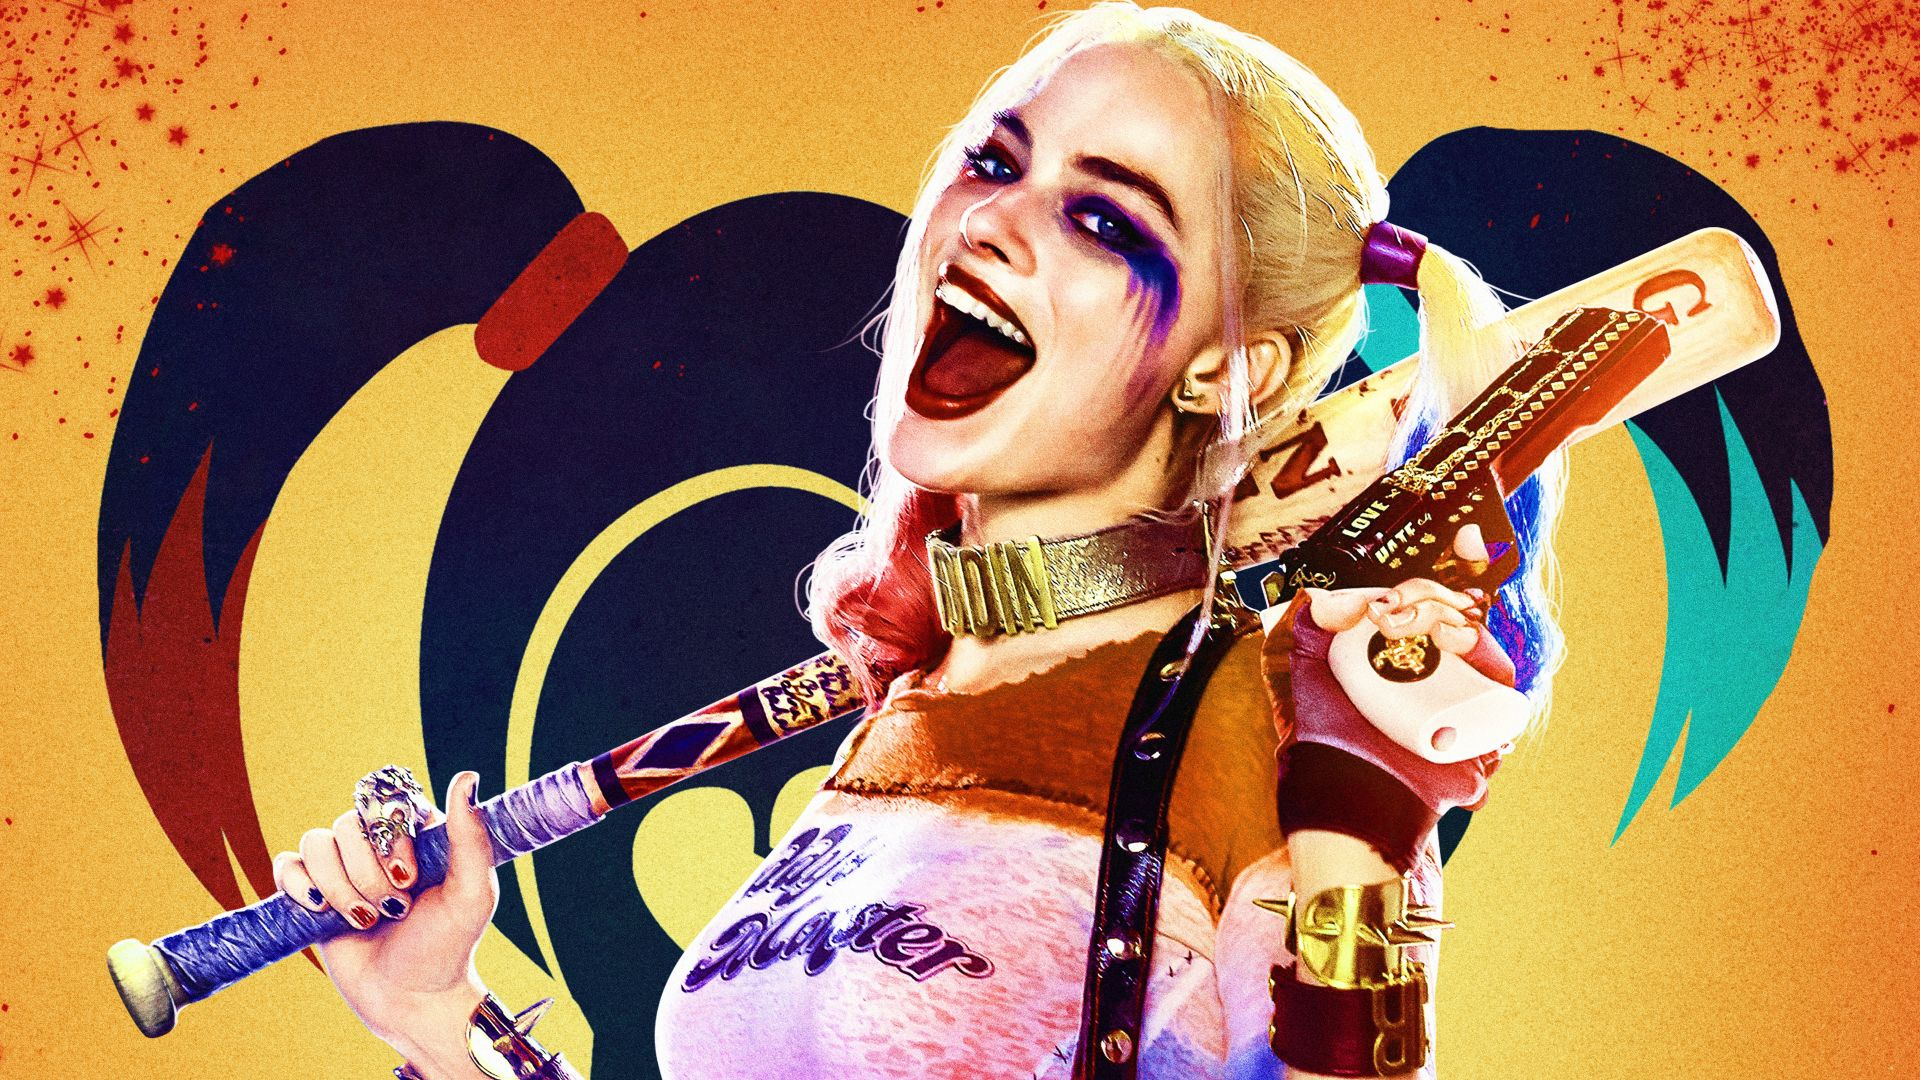 Suicide Squad Harley Quinn, PC Wallpaper HD